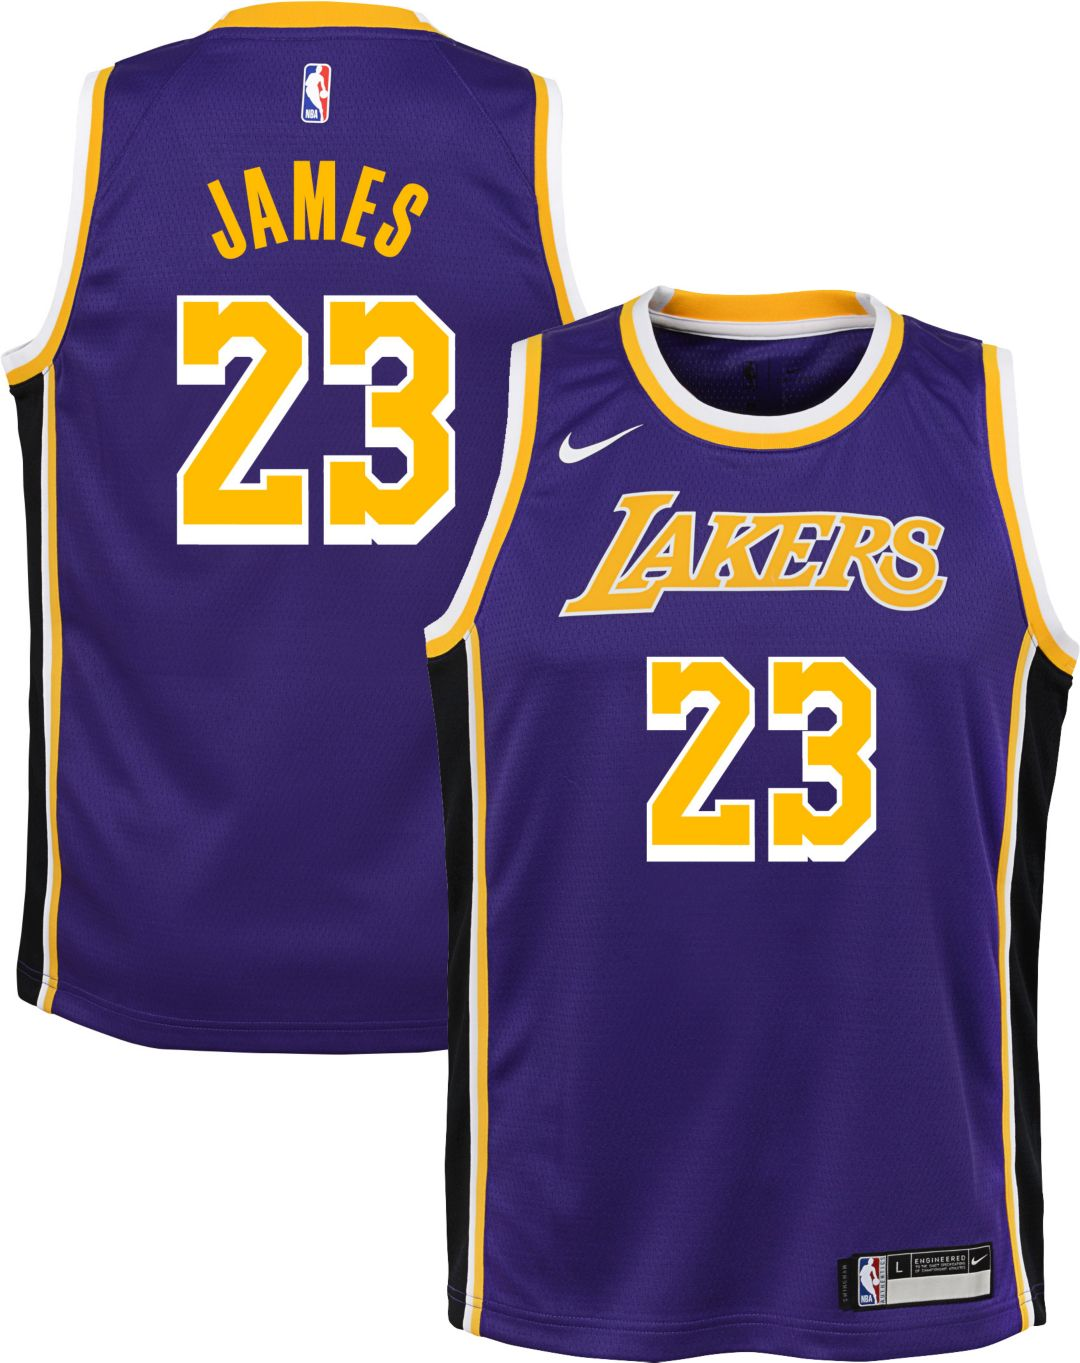 more photos 587ed 7aeed Nike Youth Los Angeles Lakers LeBron James Dri-FIT Purple Swingman Jersey